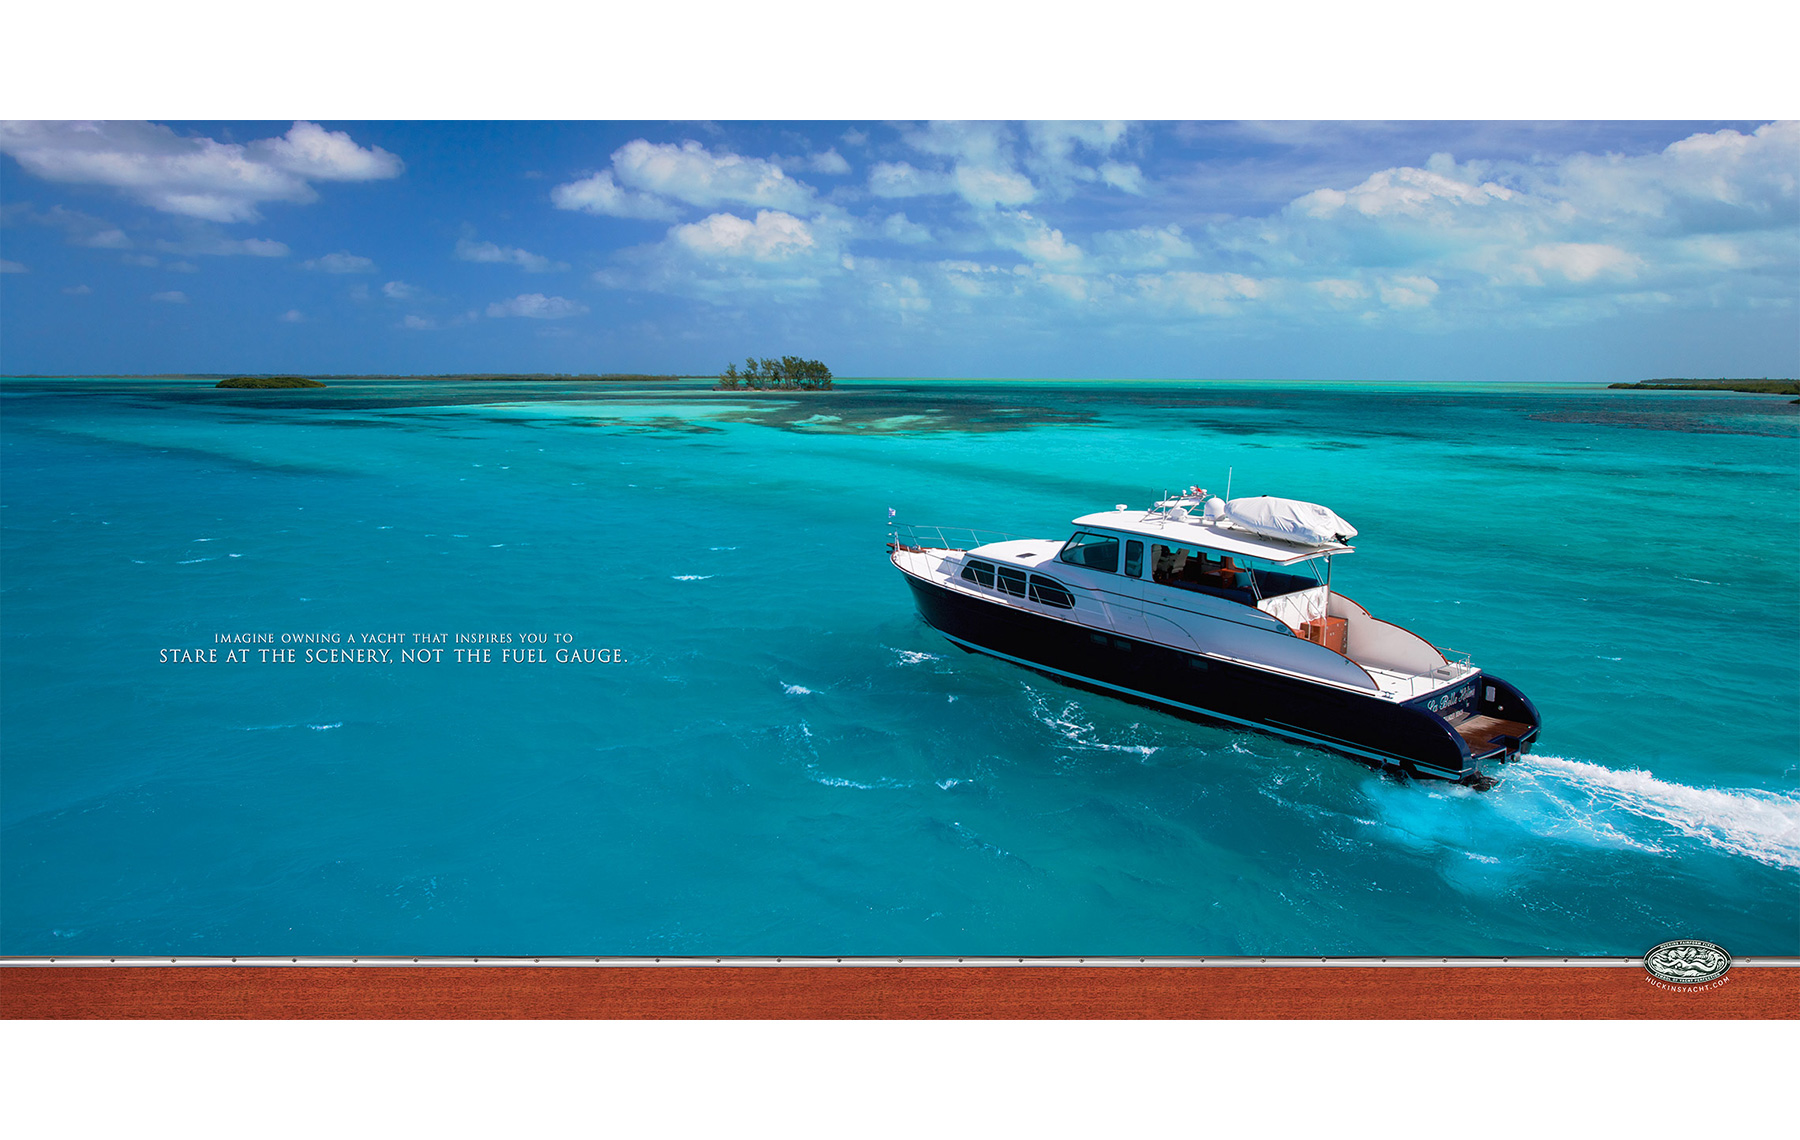 Huckins Yacht Ad photography FUELGAUGE-smaller_Robert-Holland